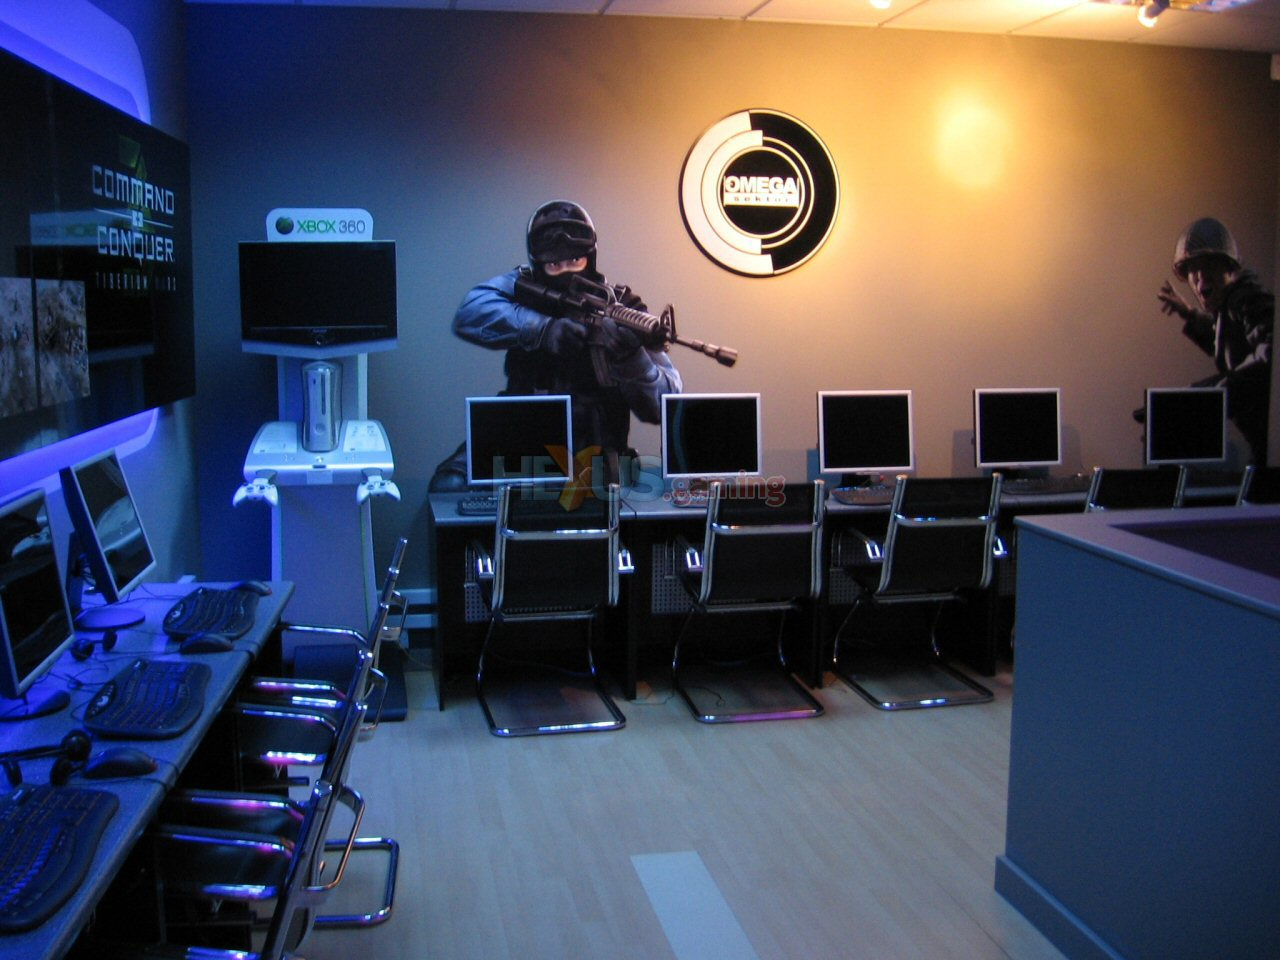 LAN gaming center